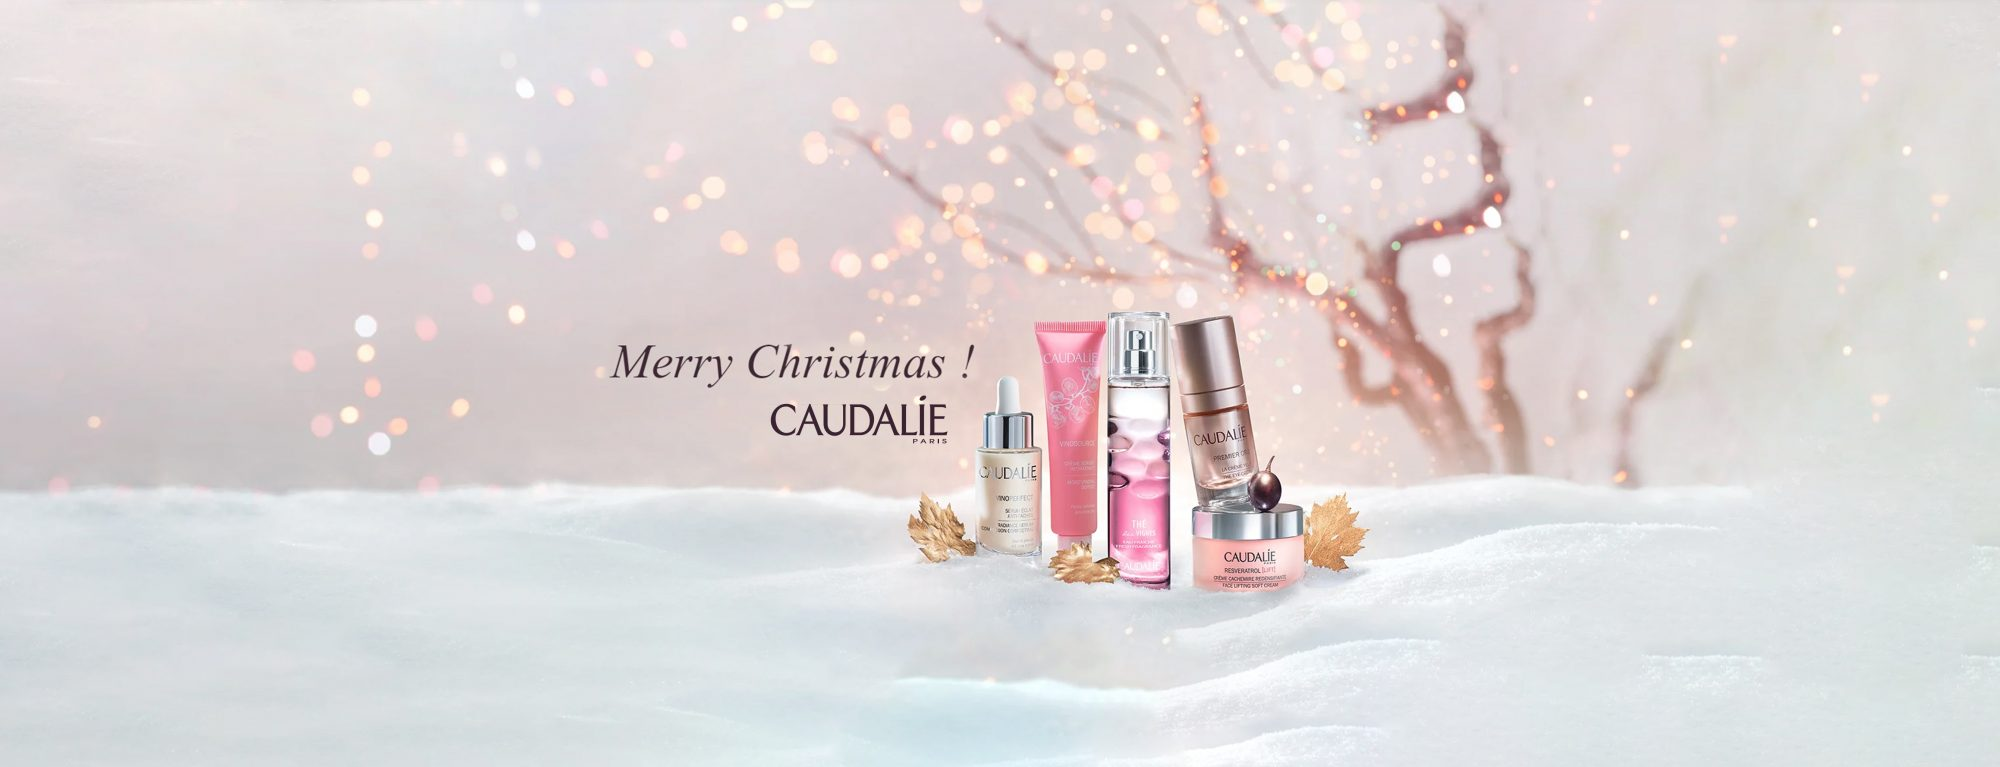 Caudalie Christmas at Frontlinestyle